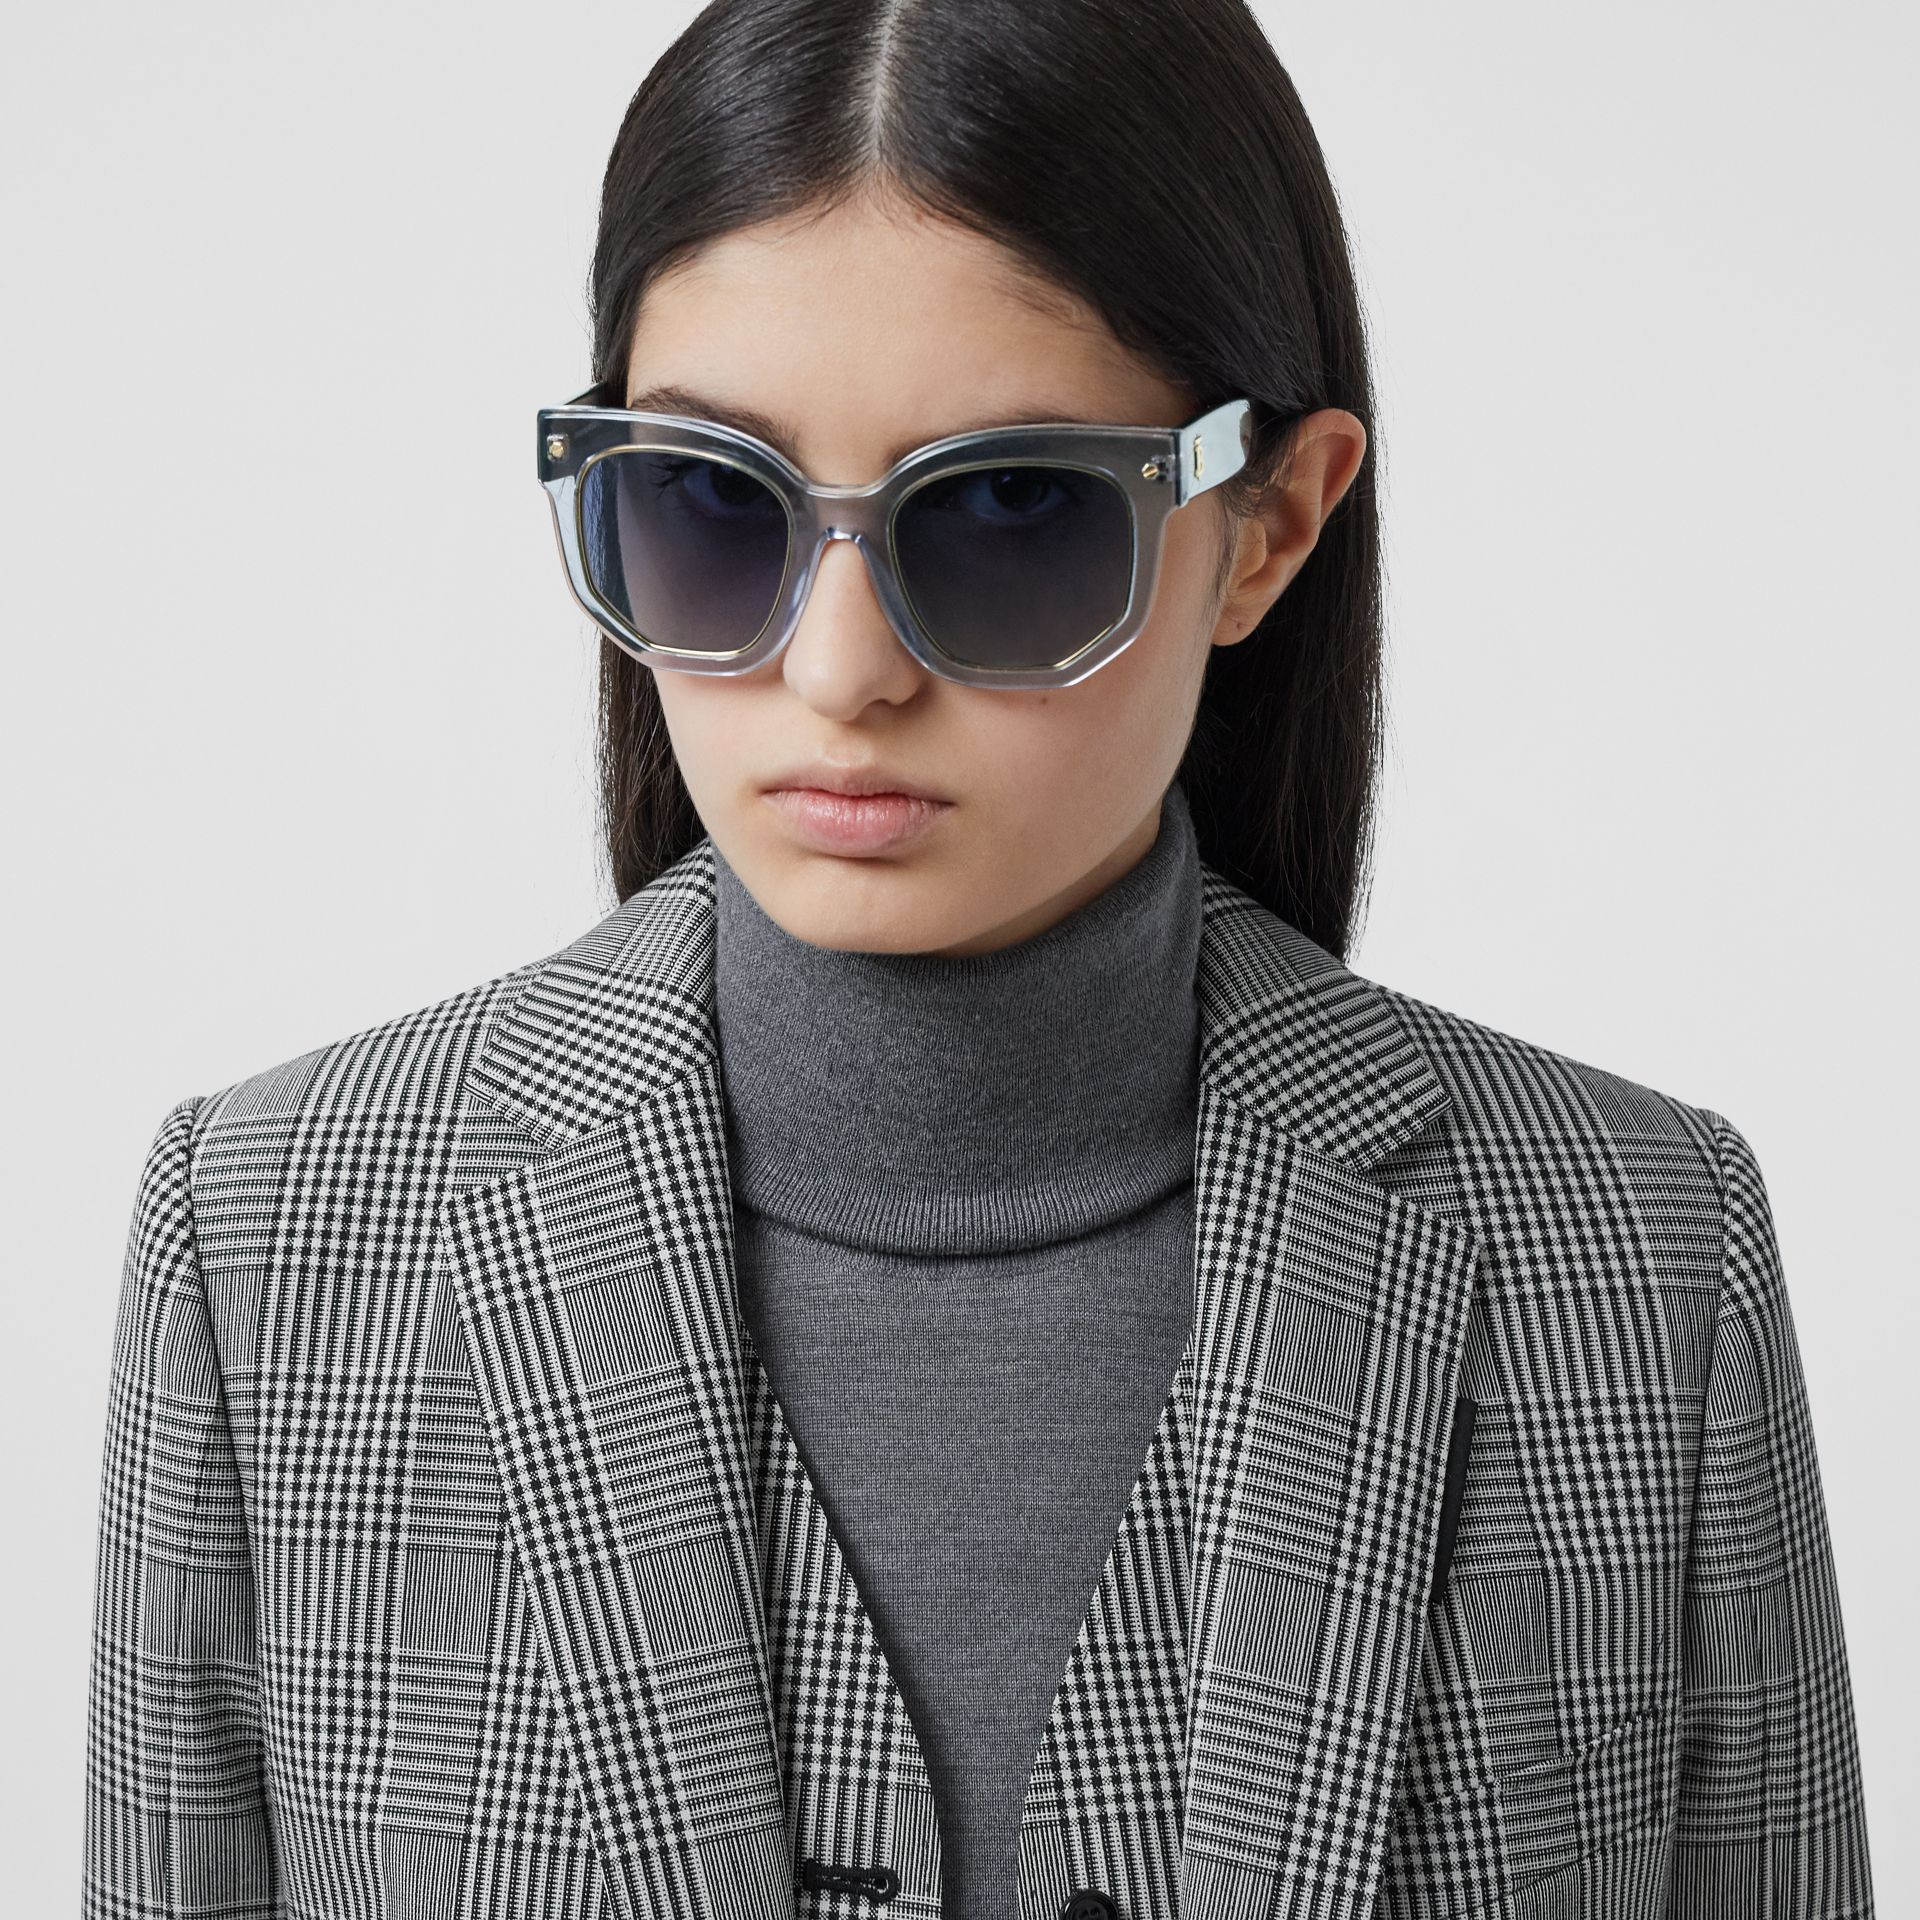 Geometric Frame Sunglasses in Grey - Women | Burberry - gallery image 2